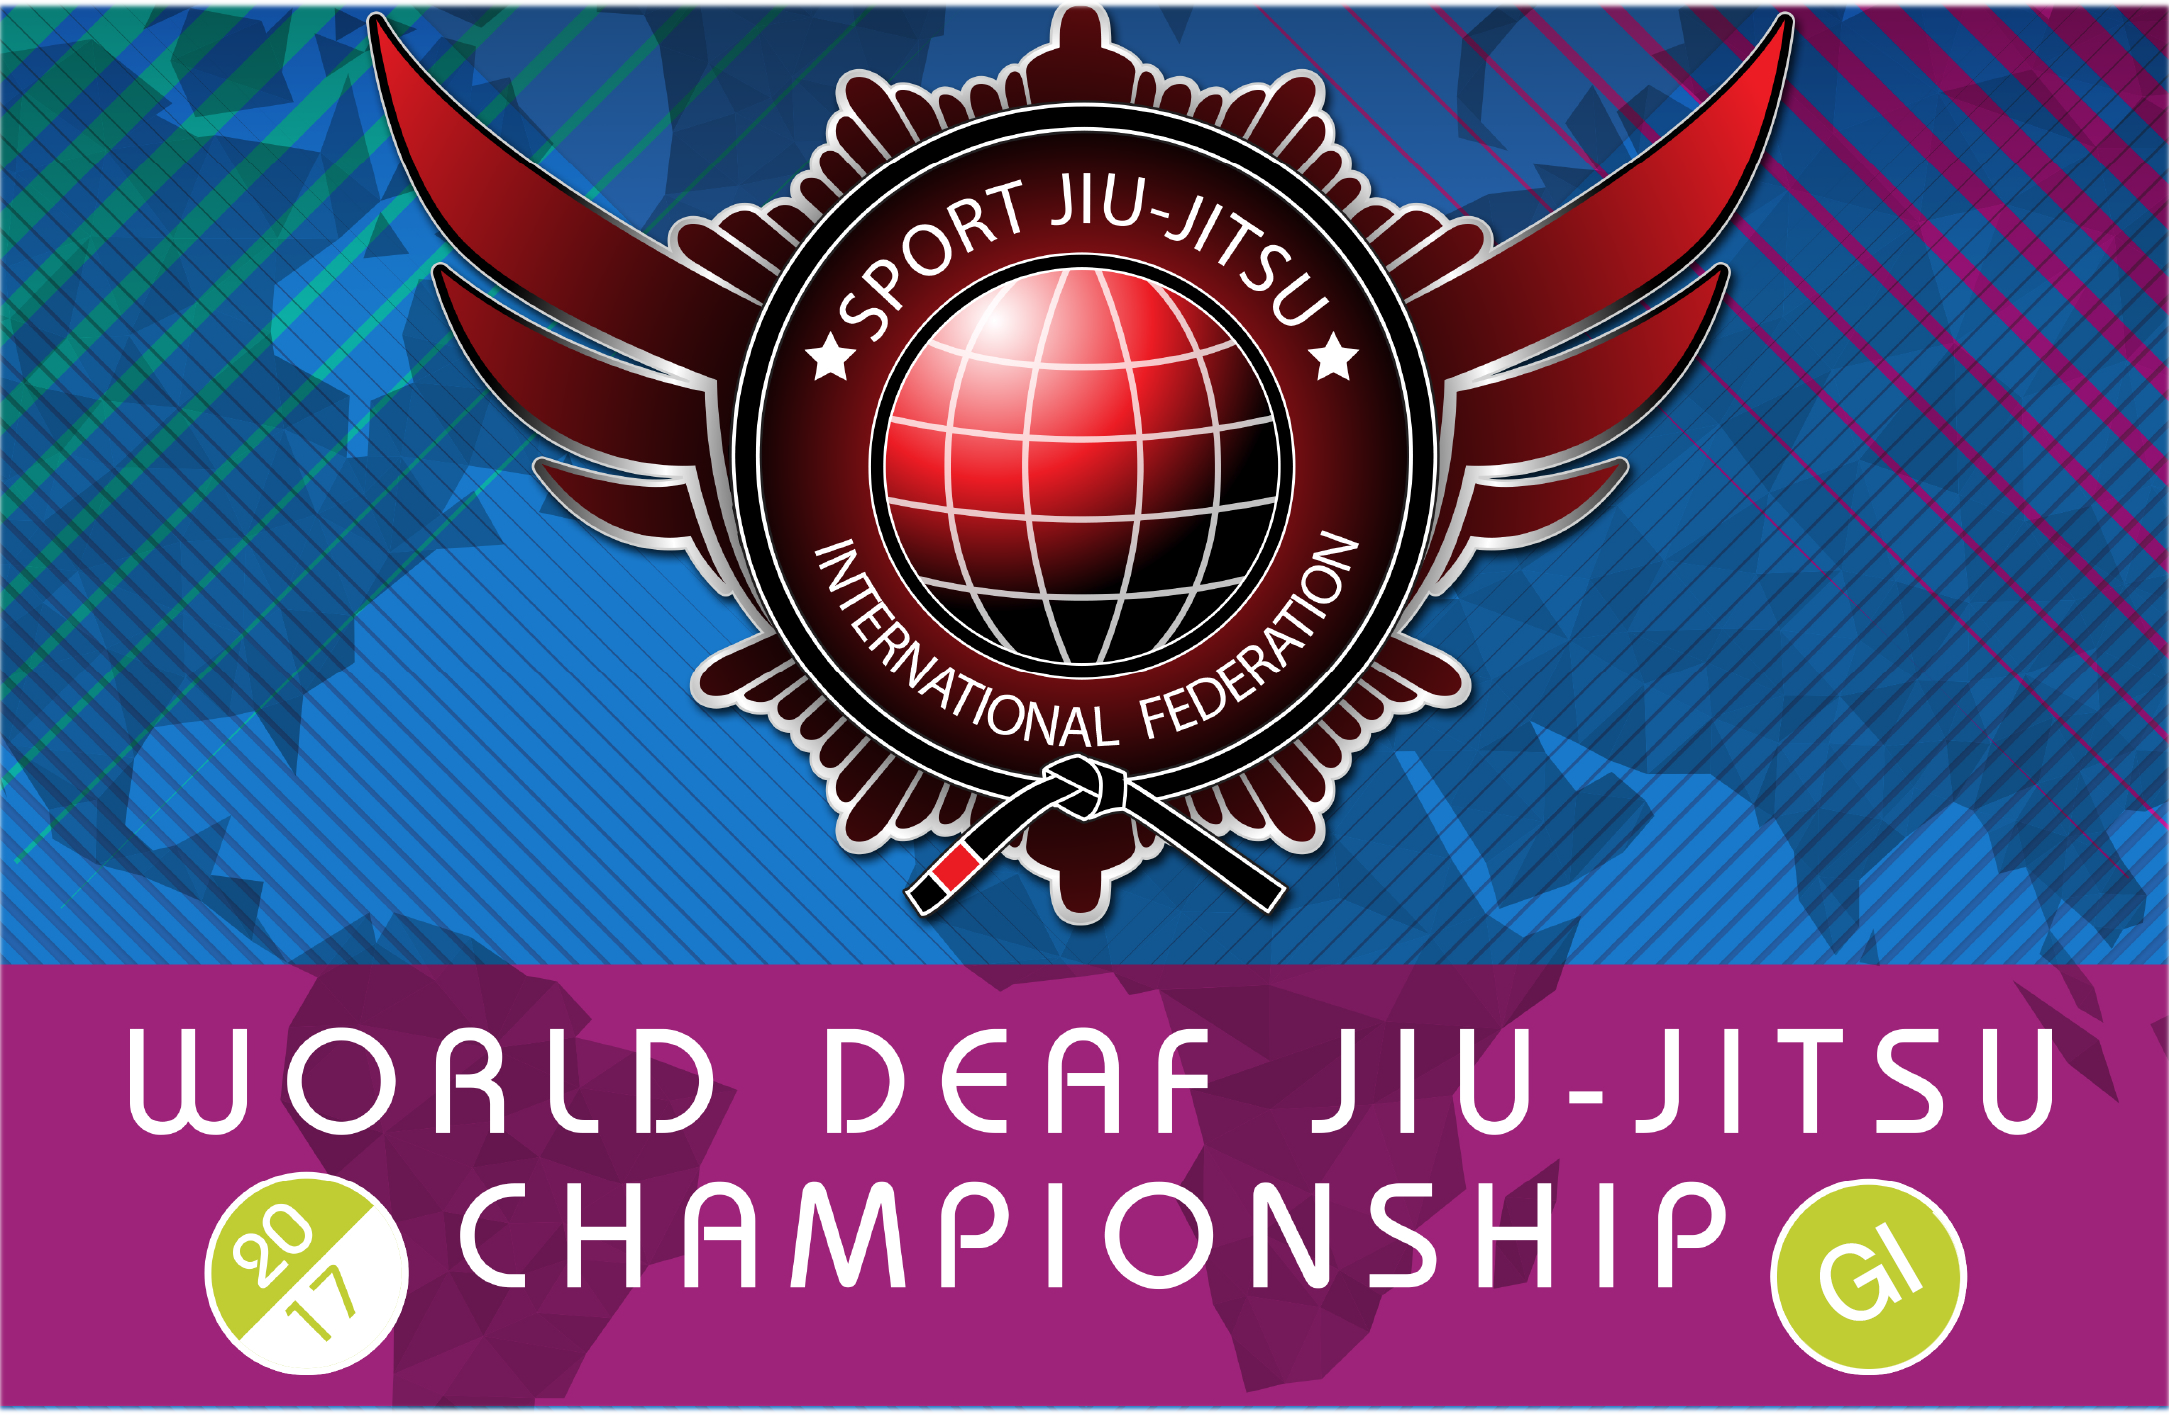 world deaf jiu-jitsu championship gi